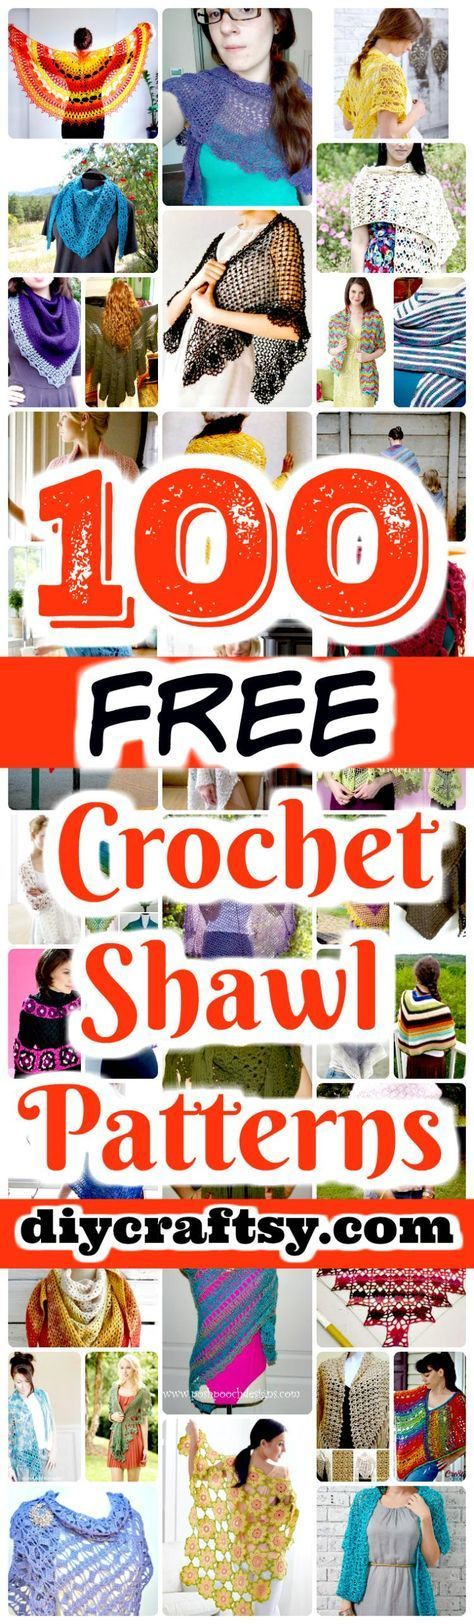 We have brought this 100 free crochet shawl patterns collection that is going to be a big surprise for crochet lovers as well as for the fashion enthusiasts